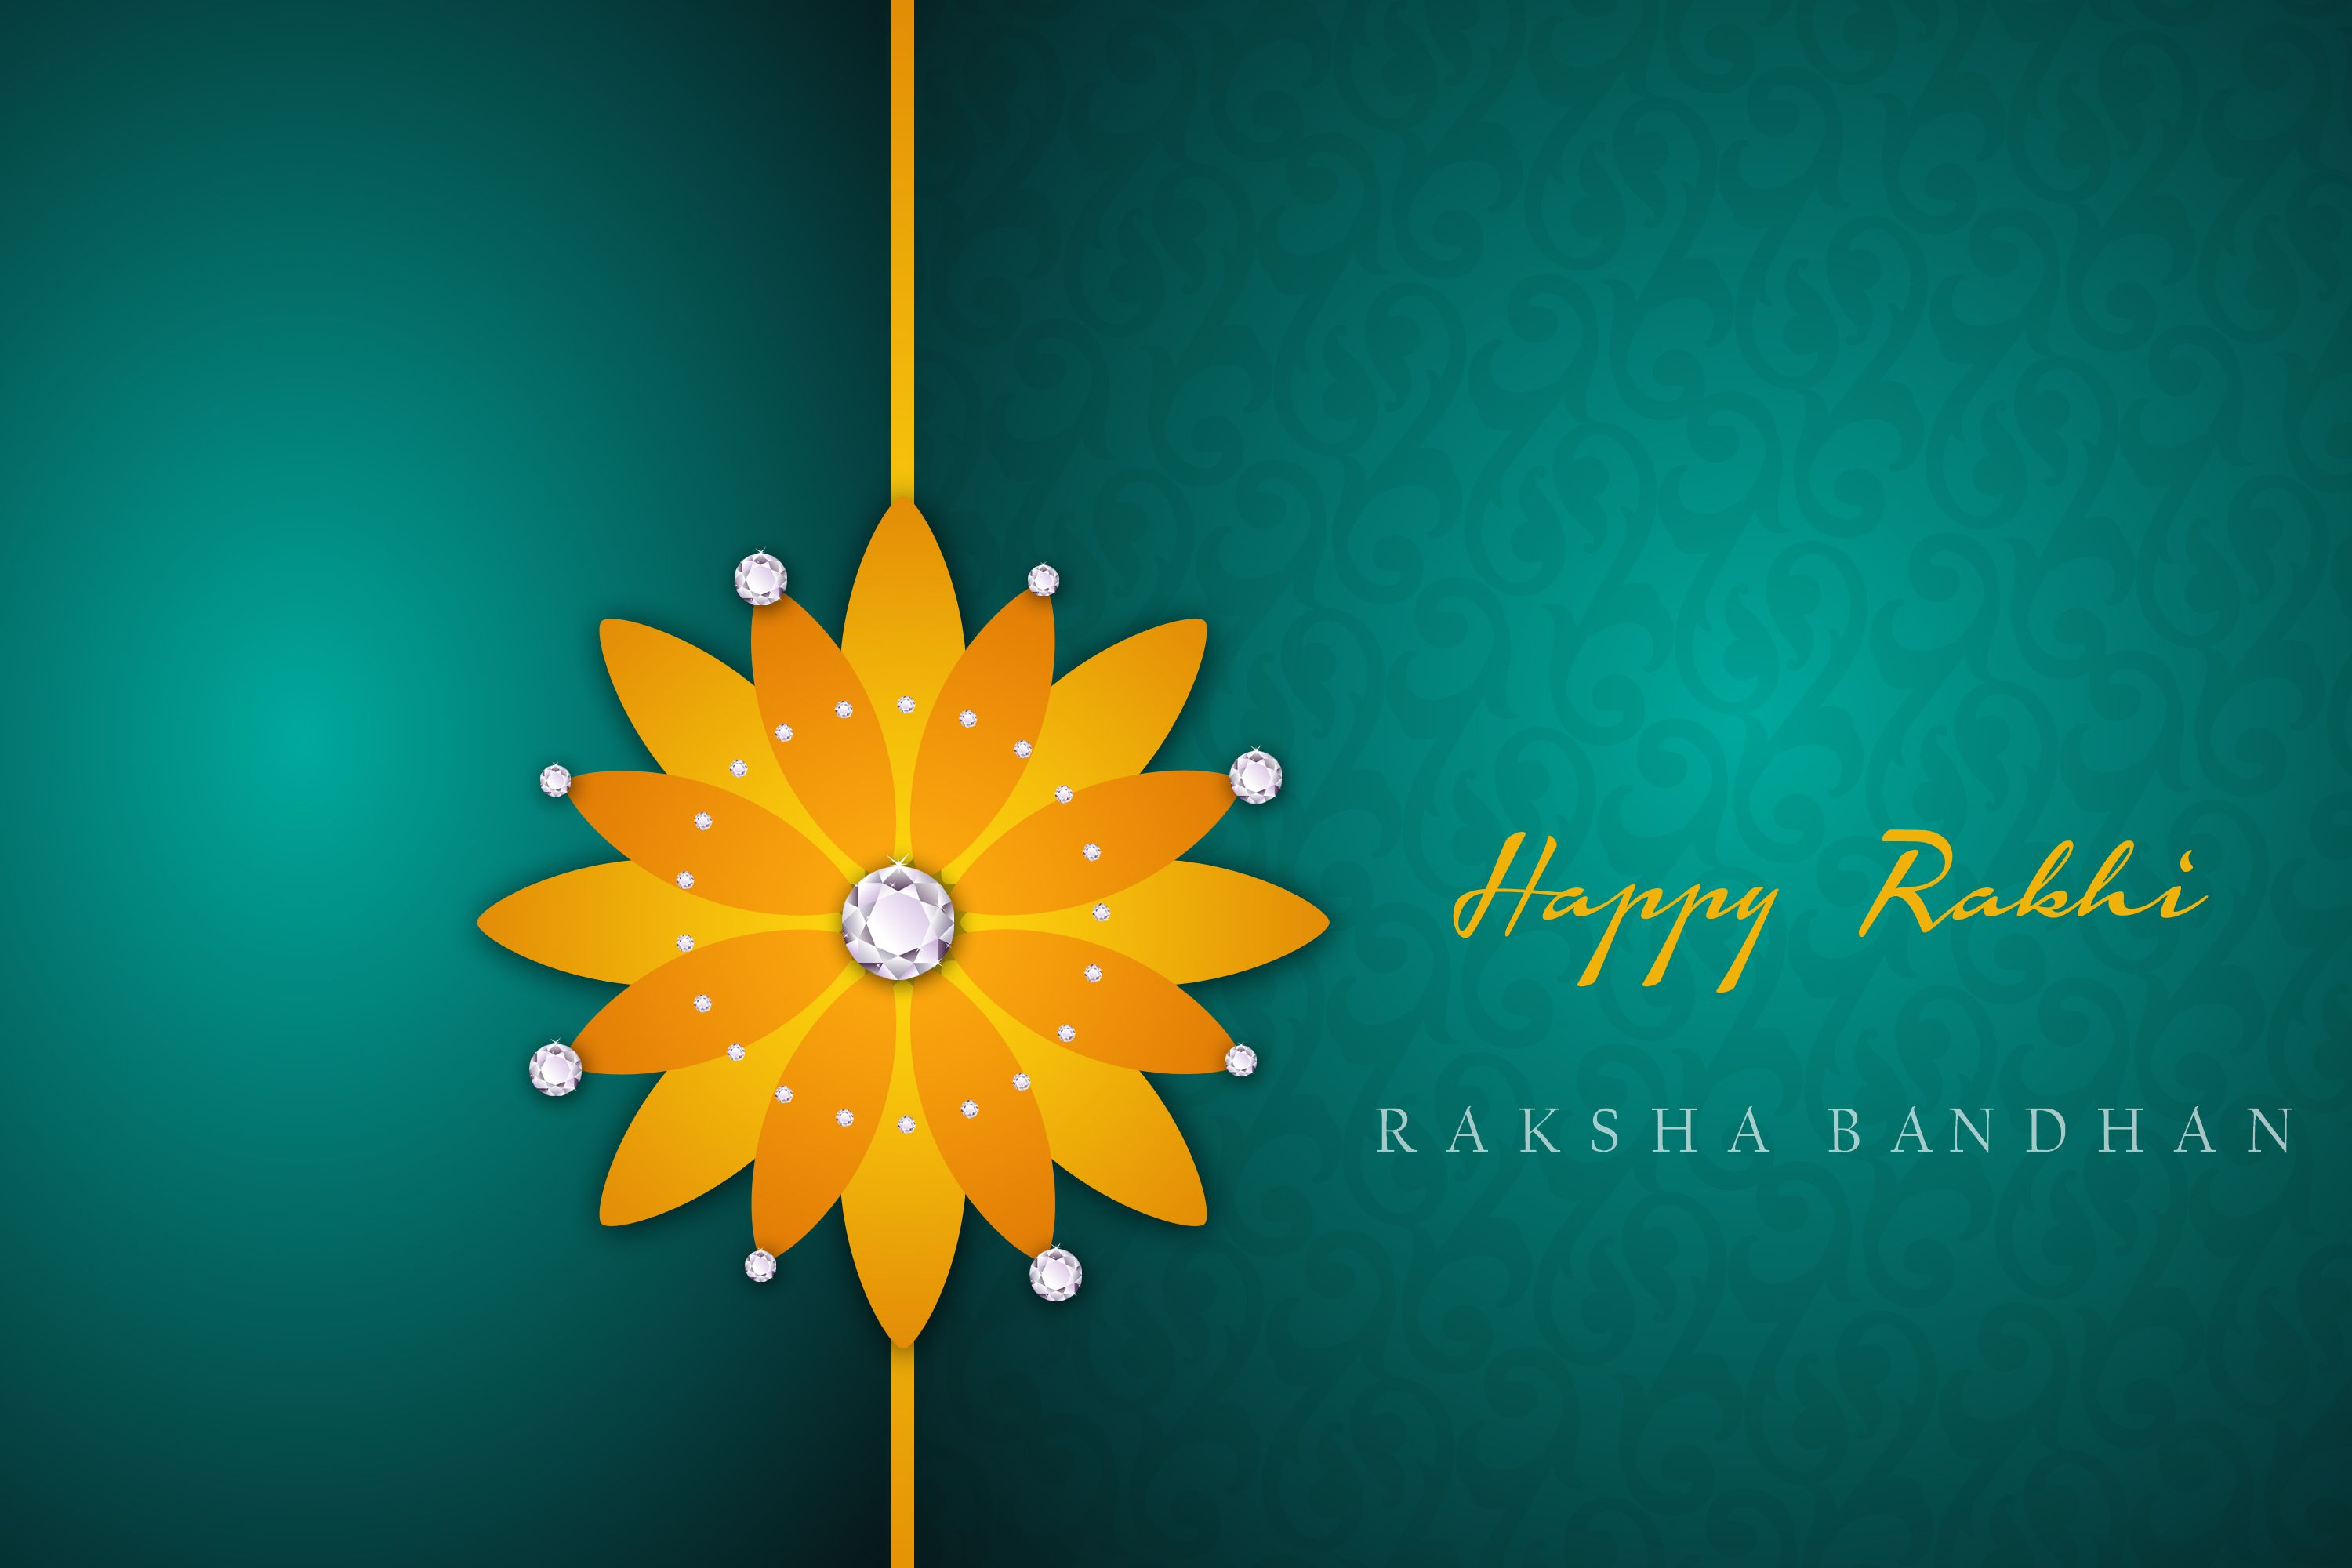 rakhi wallpapers hd - photo #29